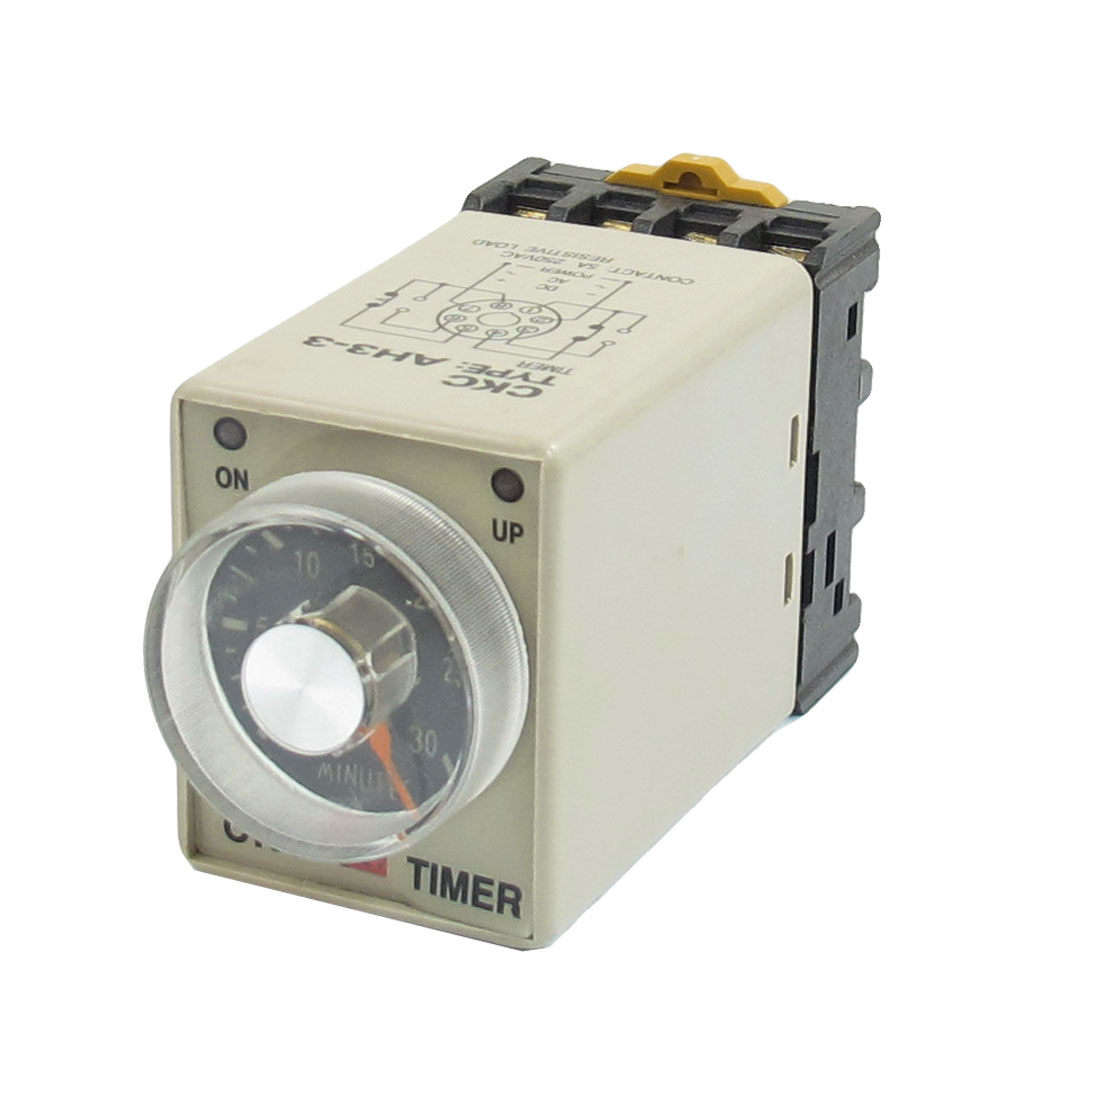 DC 12V 0-30 Minutes 30 Min Delay Timer Time Relay w 8 Pin DIN Rail Socket